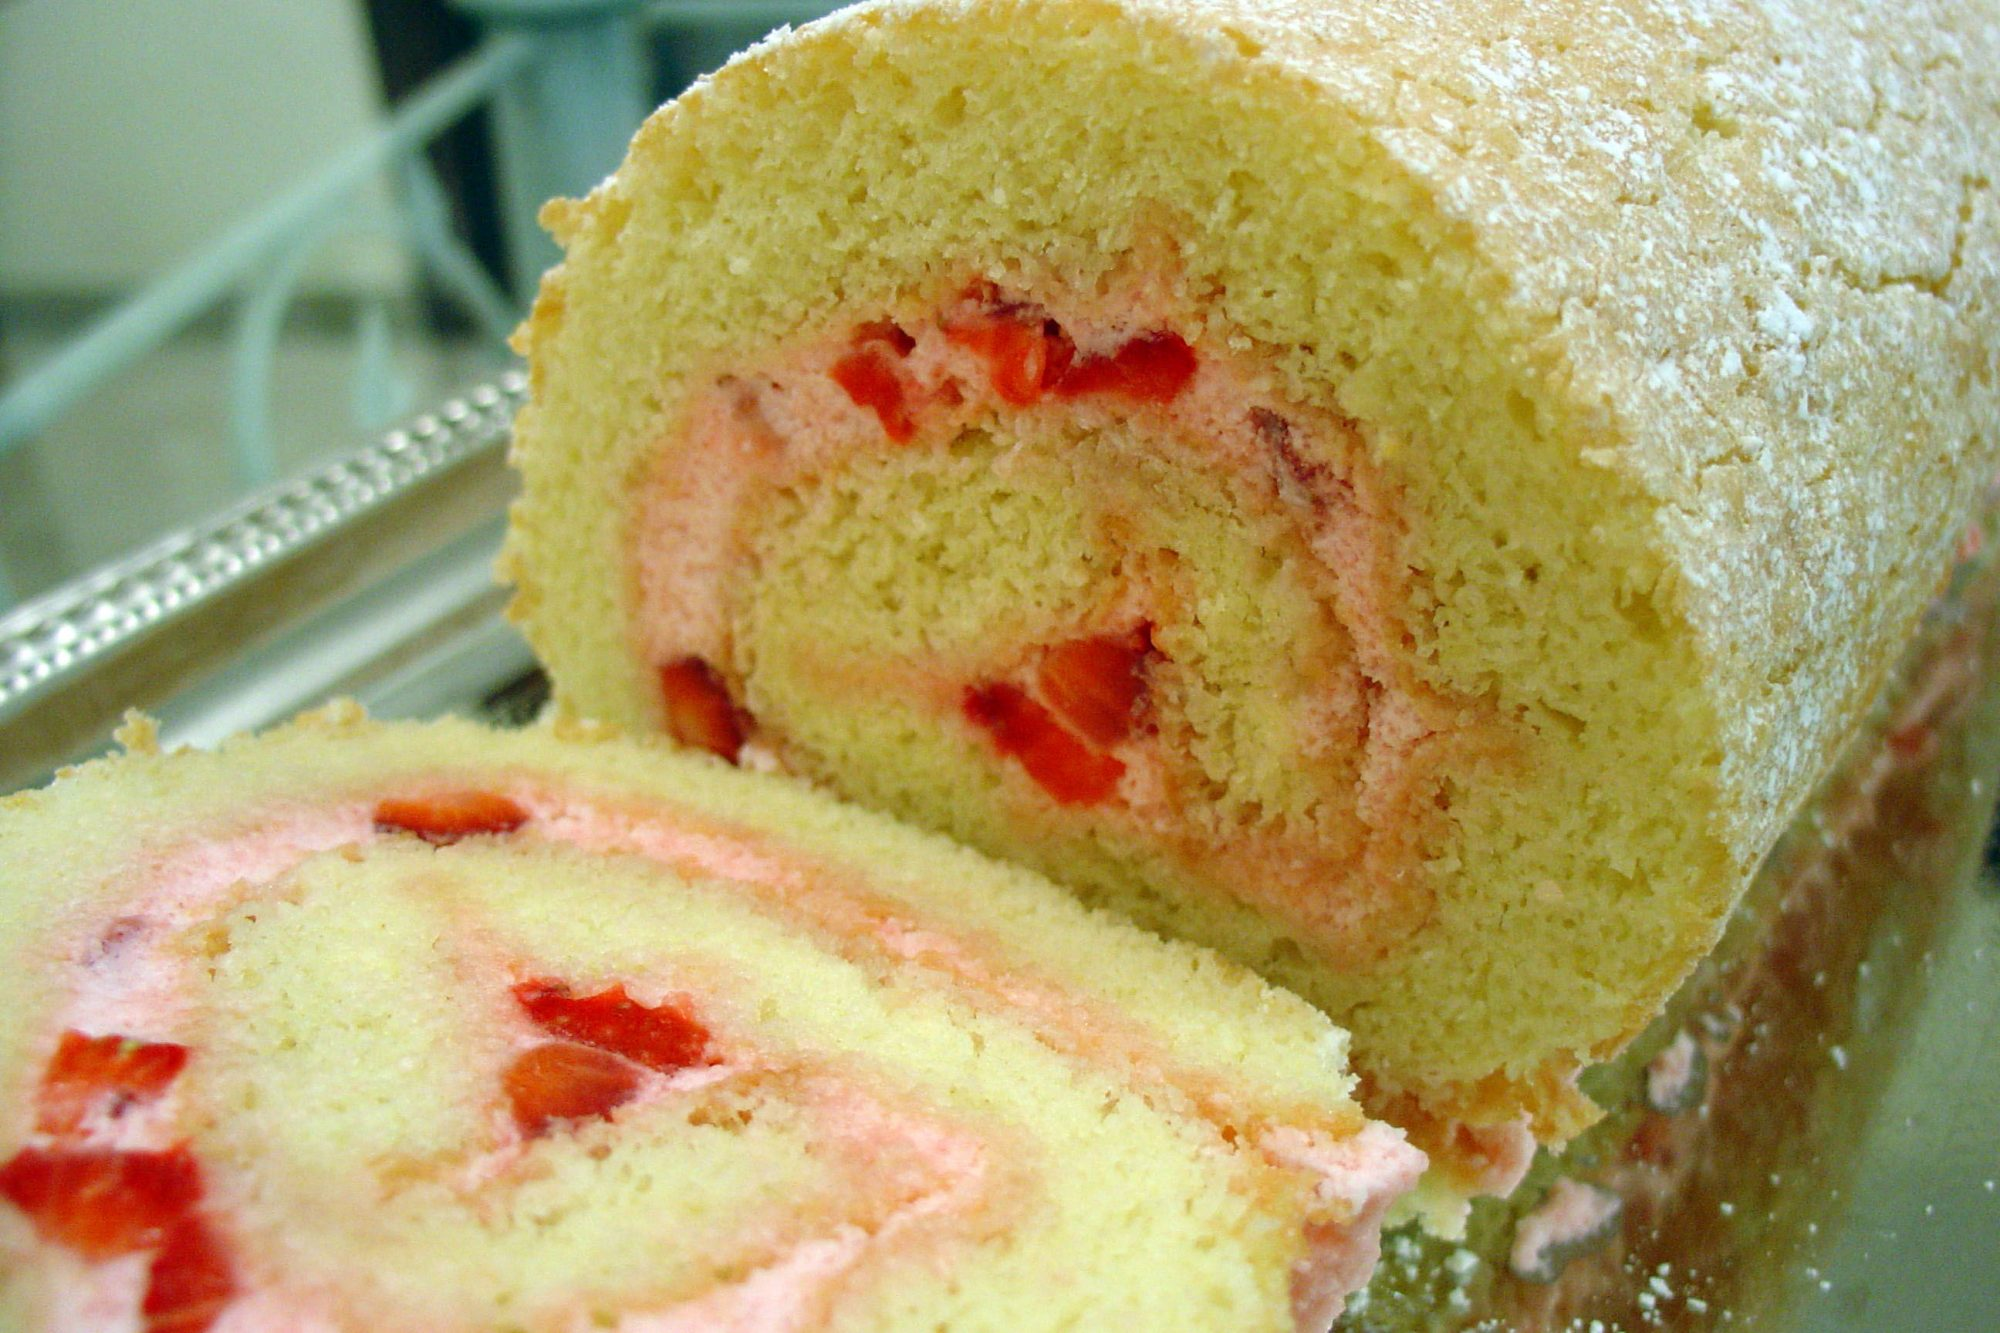 closeup of a Swiss roll cake sliced to show the swirl of strawberry cream filling